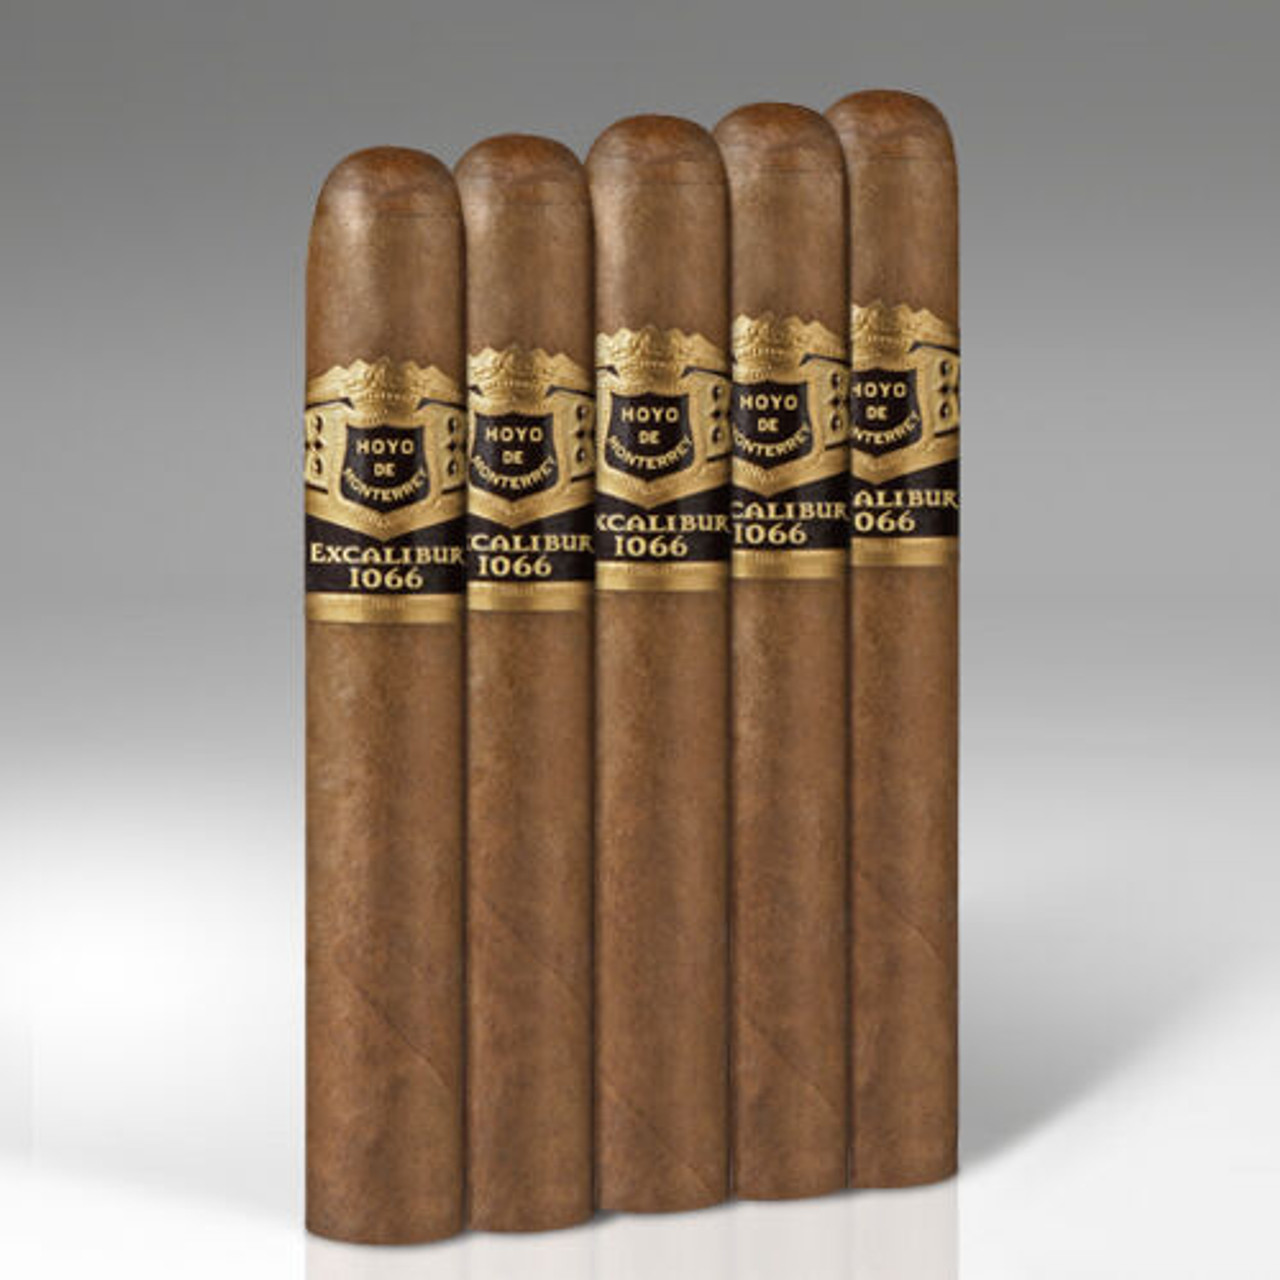 Excalibur Cameroon Merlin Cigars - 5.25 x 50 (Pack of 5)